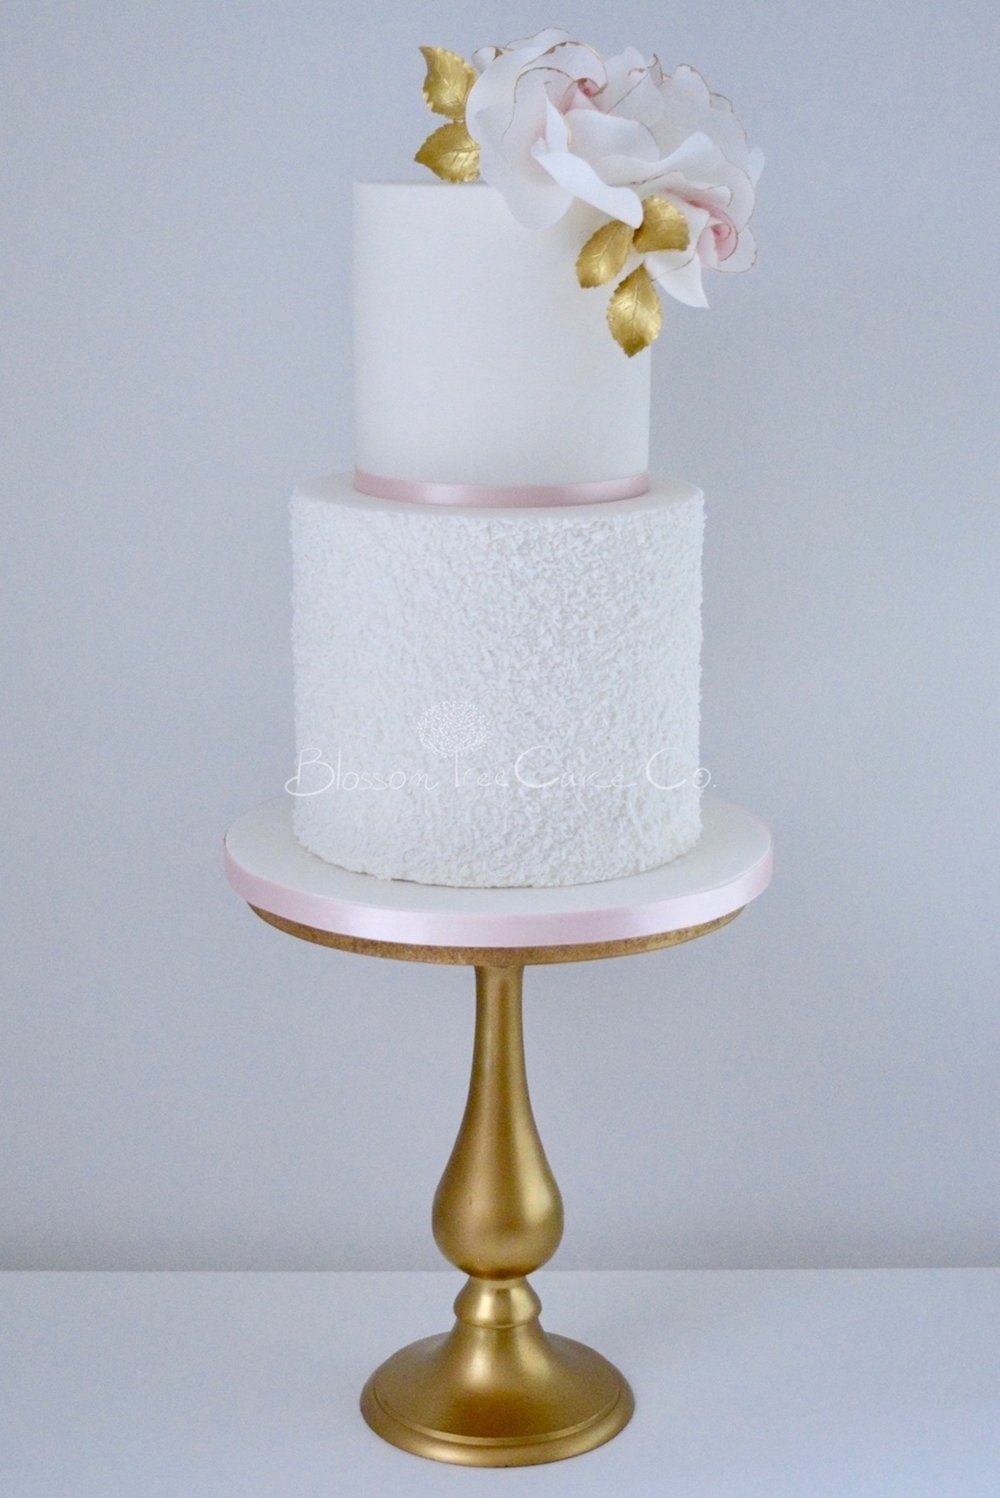 Blush and Gold Roses celebration cake by Blossom Tree Cake Company Harrogate North Yorkshire